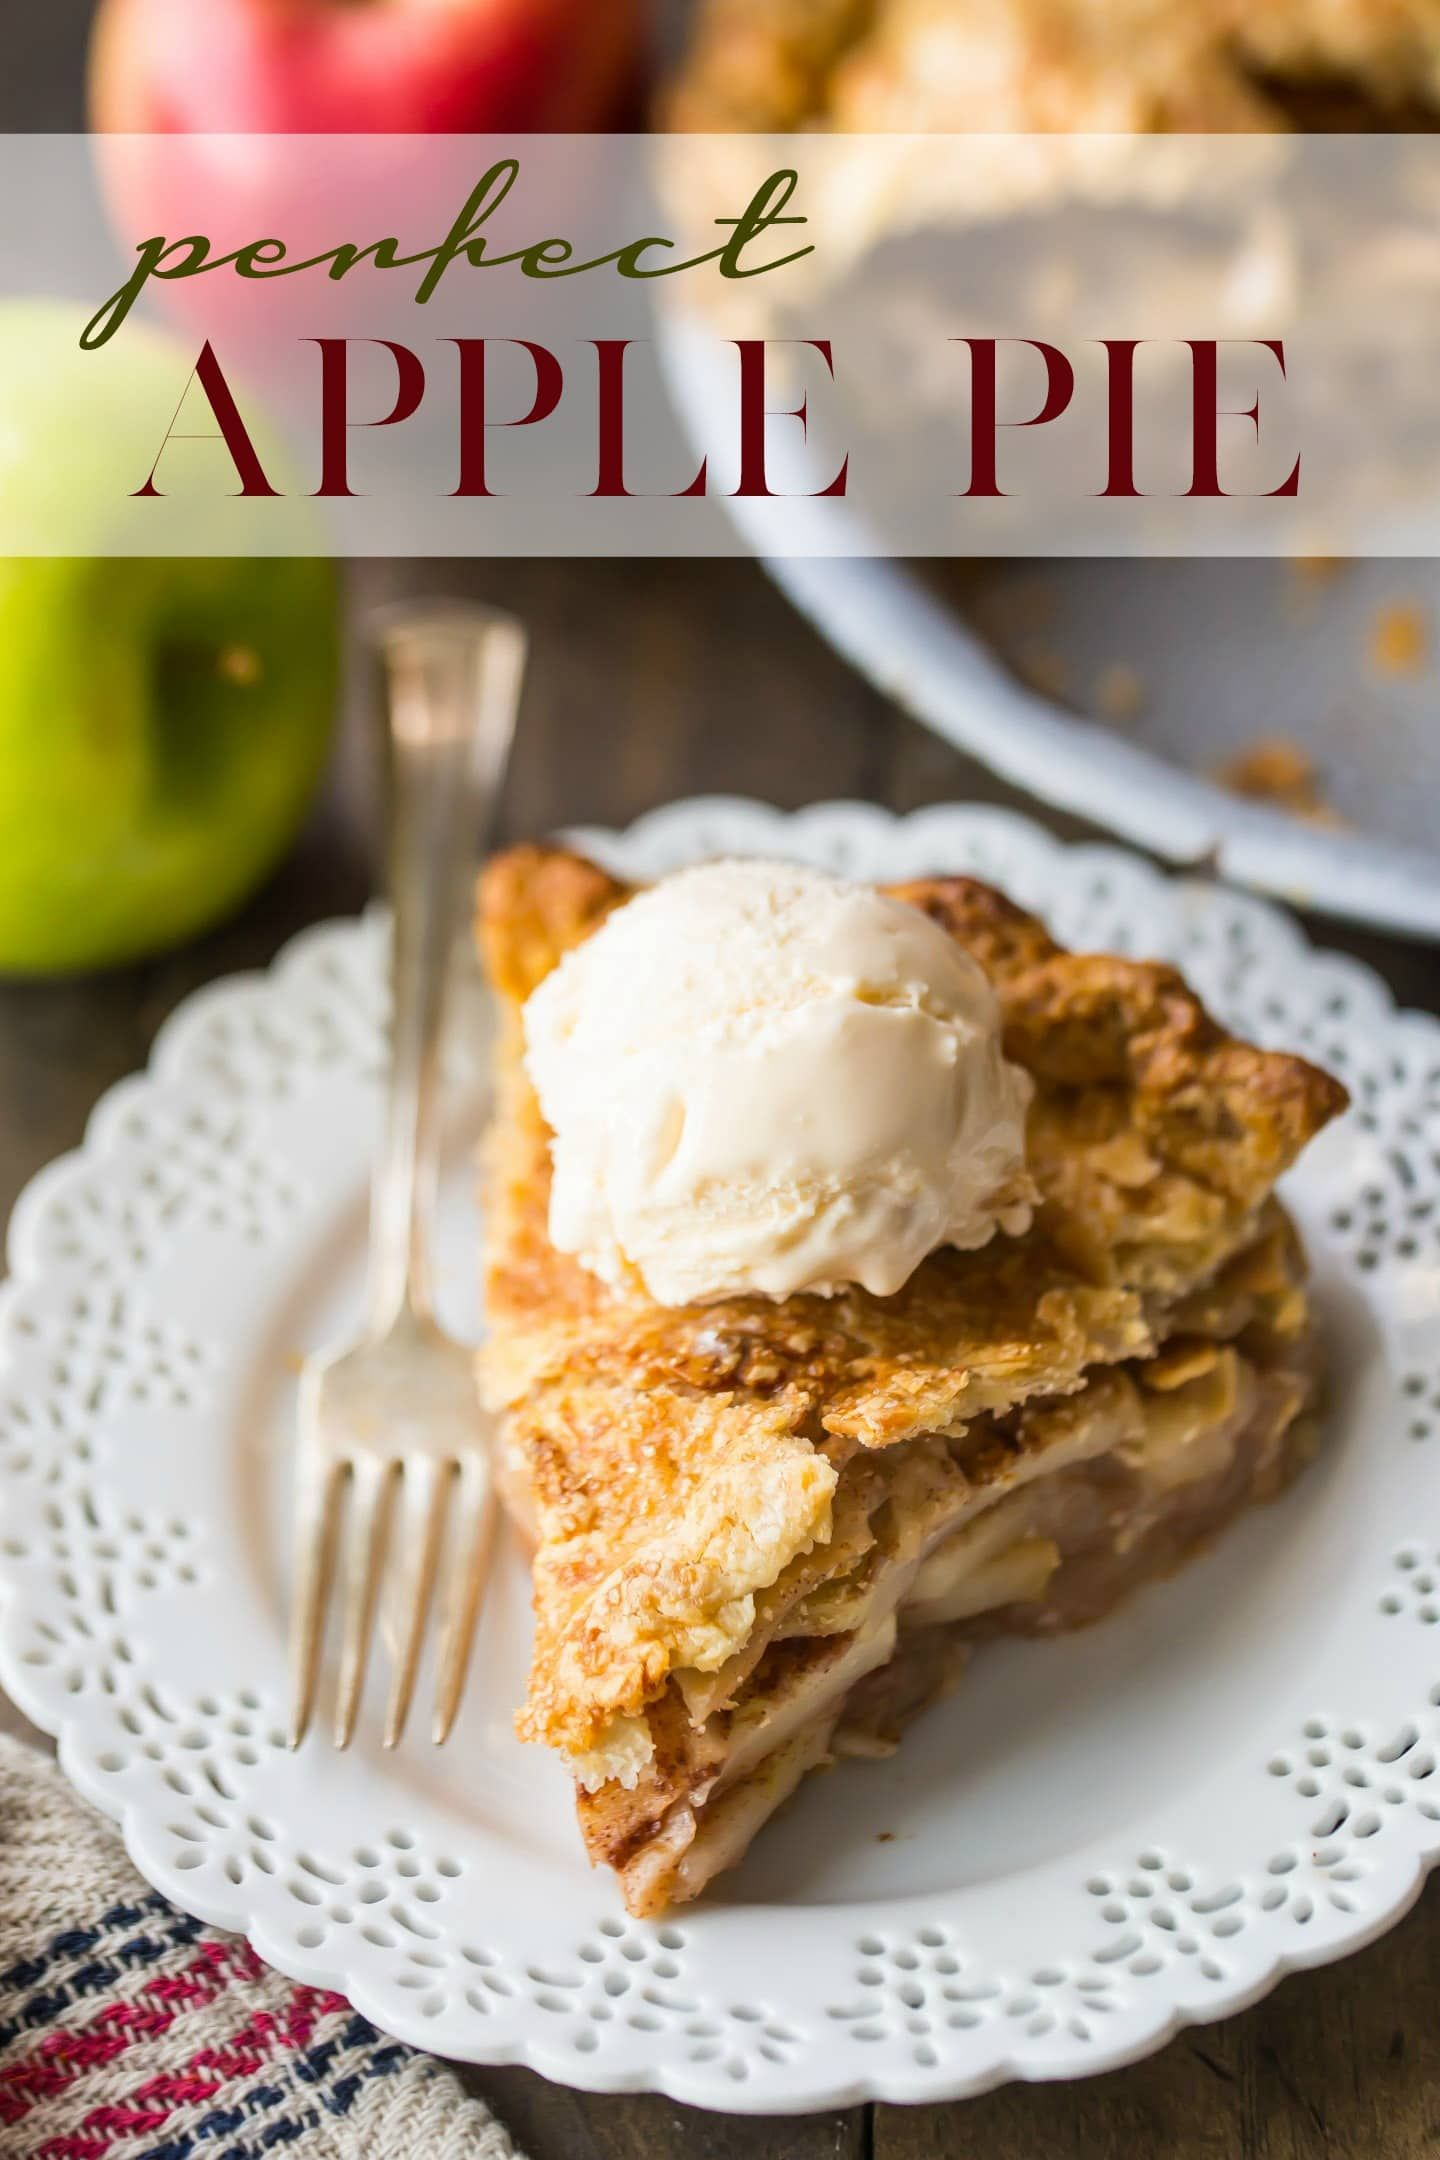 Perfect Apple Pie Tender Cinnamon Spiced Apples Baked In A Flaky